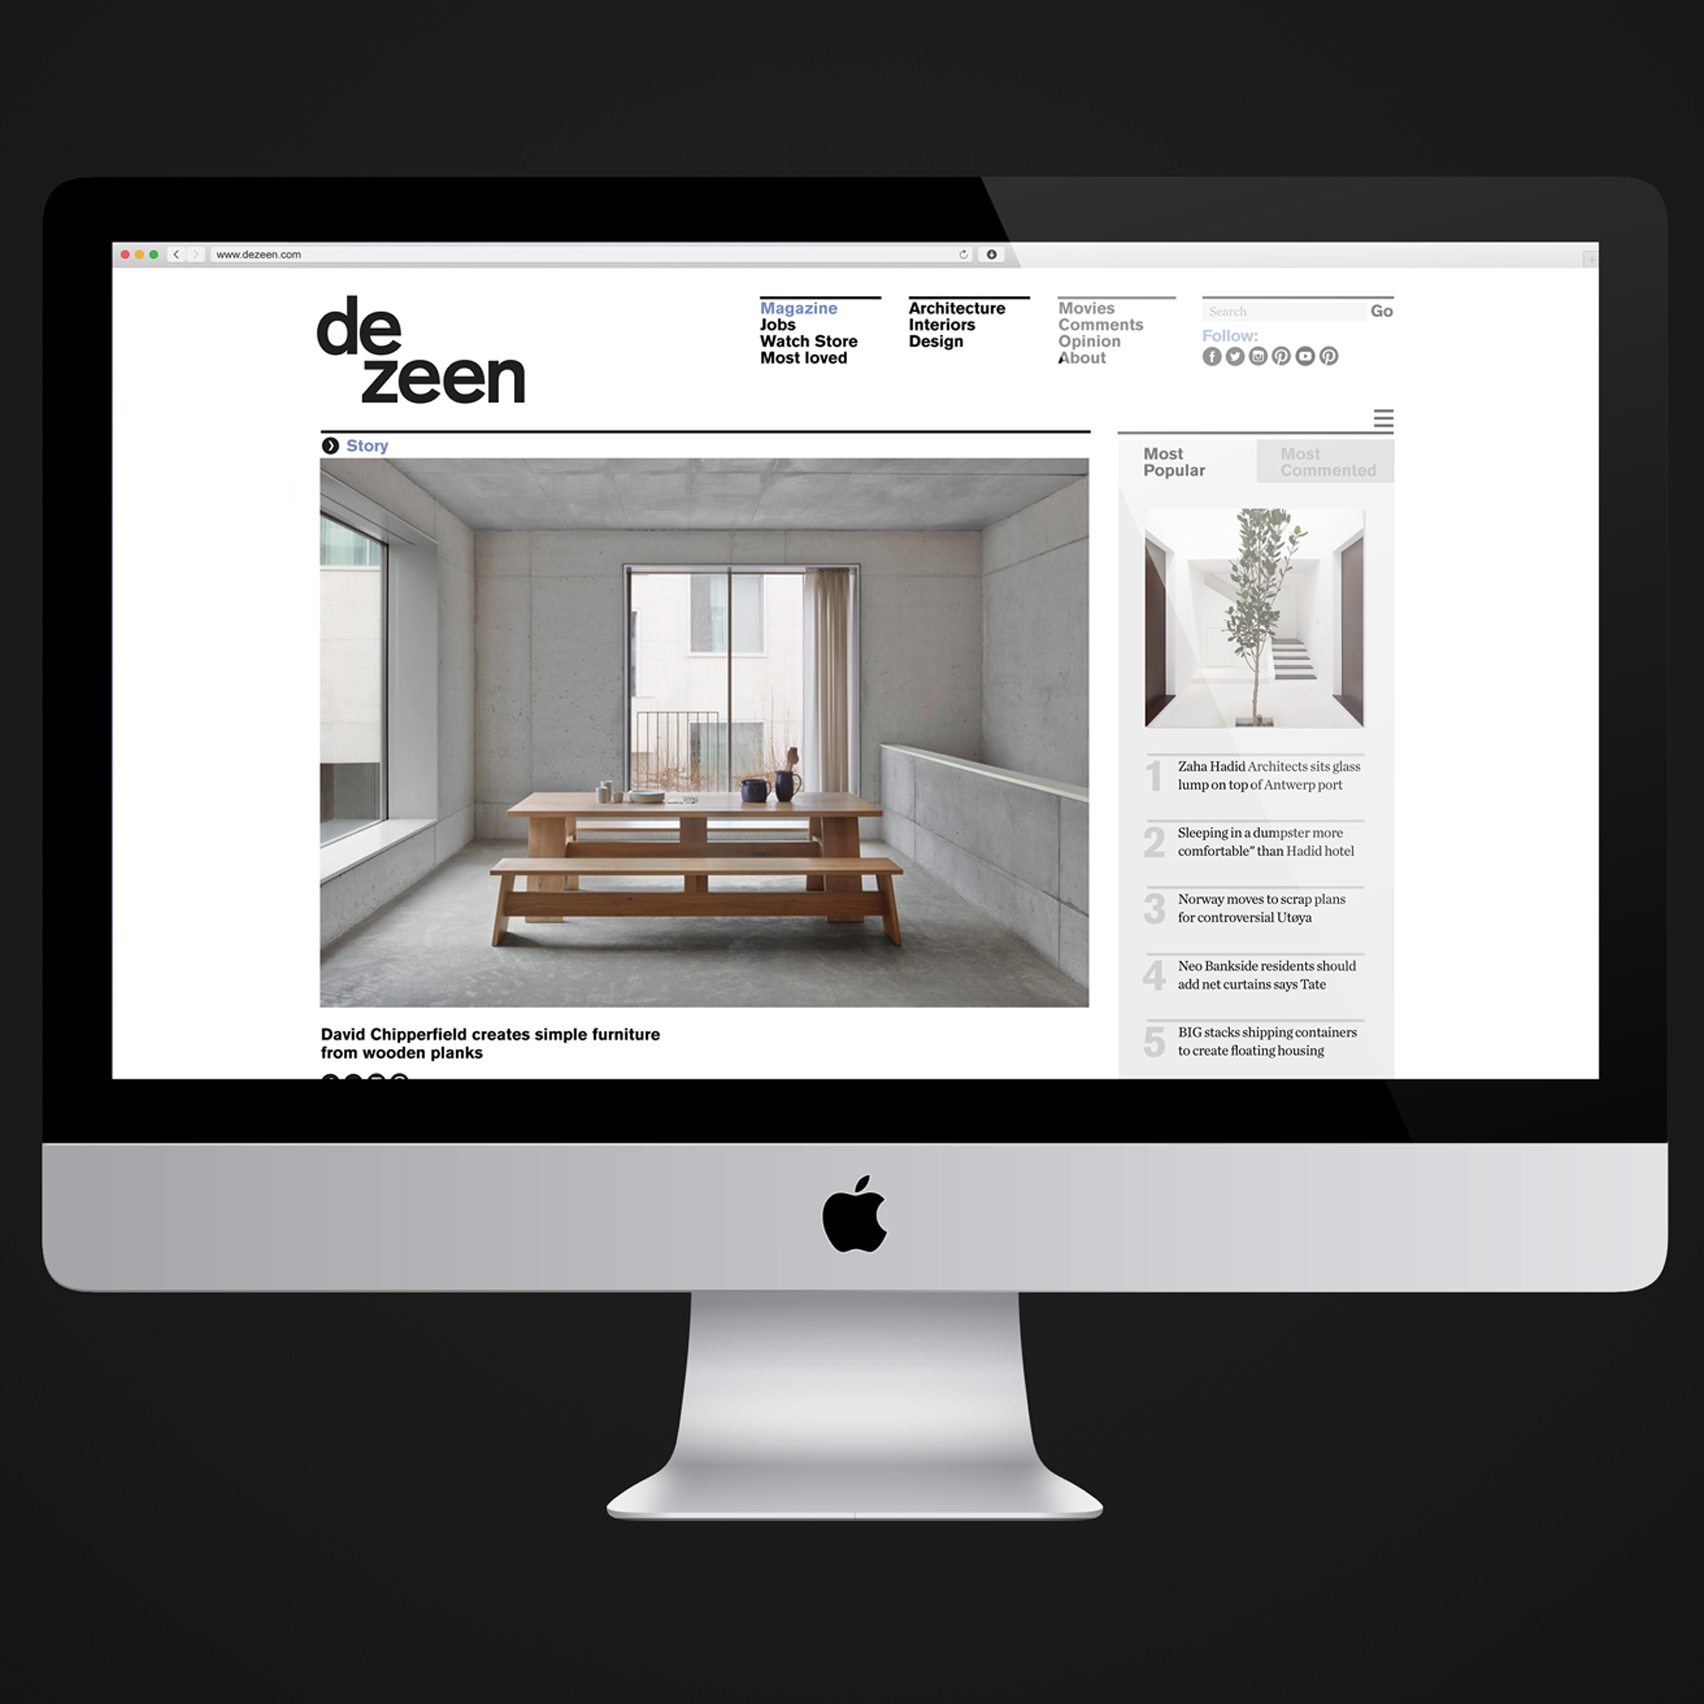 Record traffic to Dezeen in 2016 with almost 50 million visits